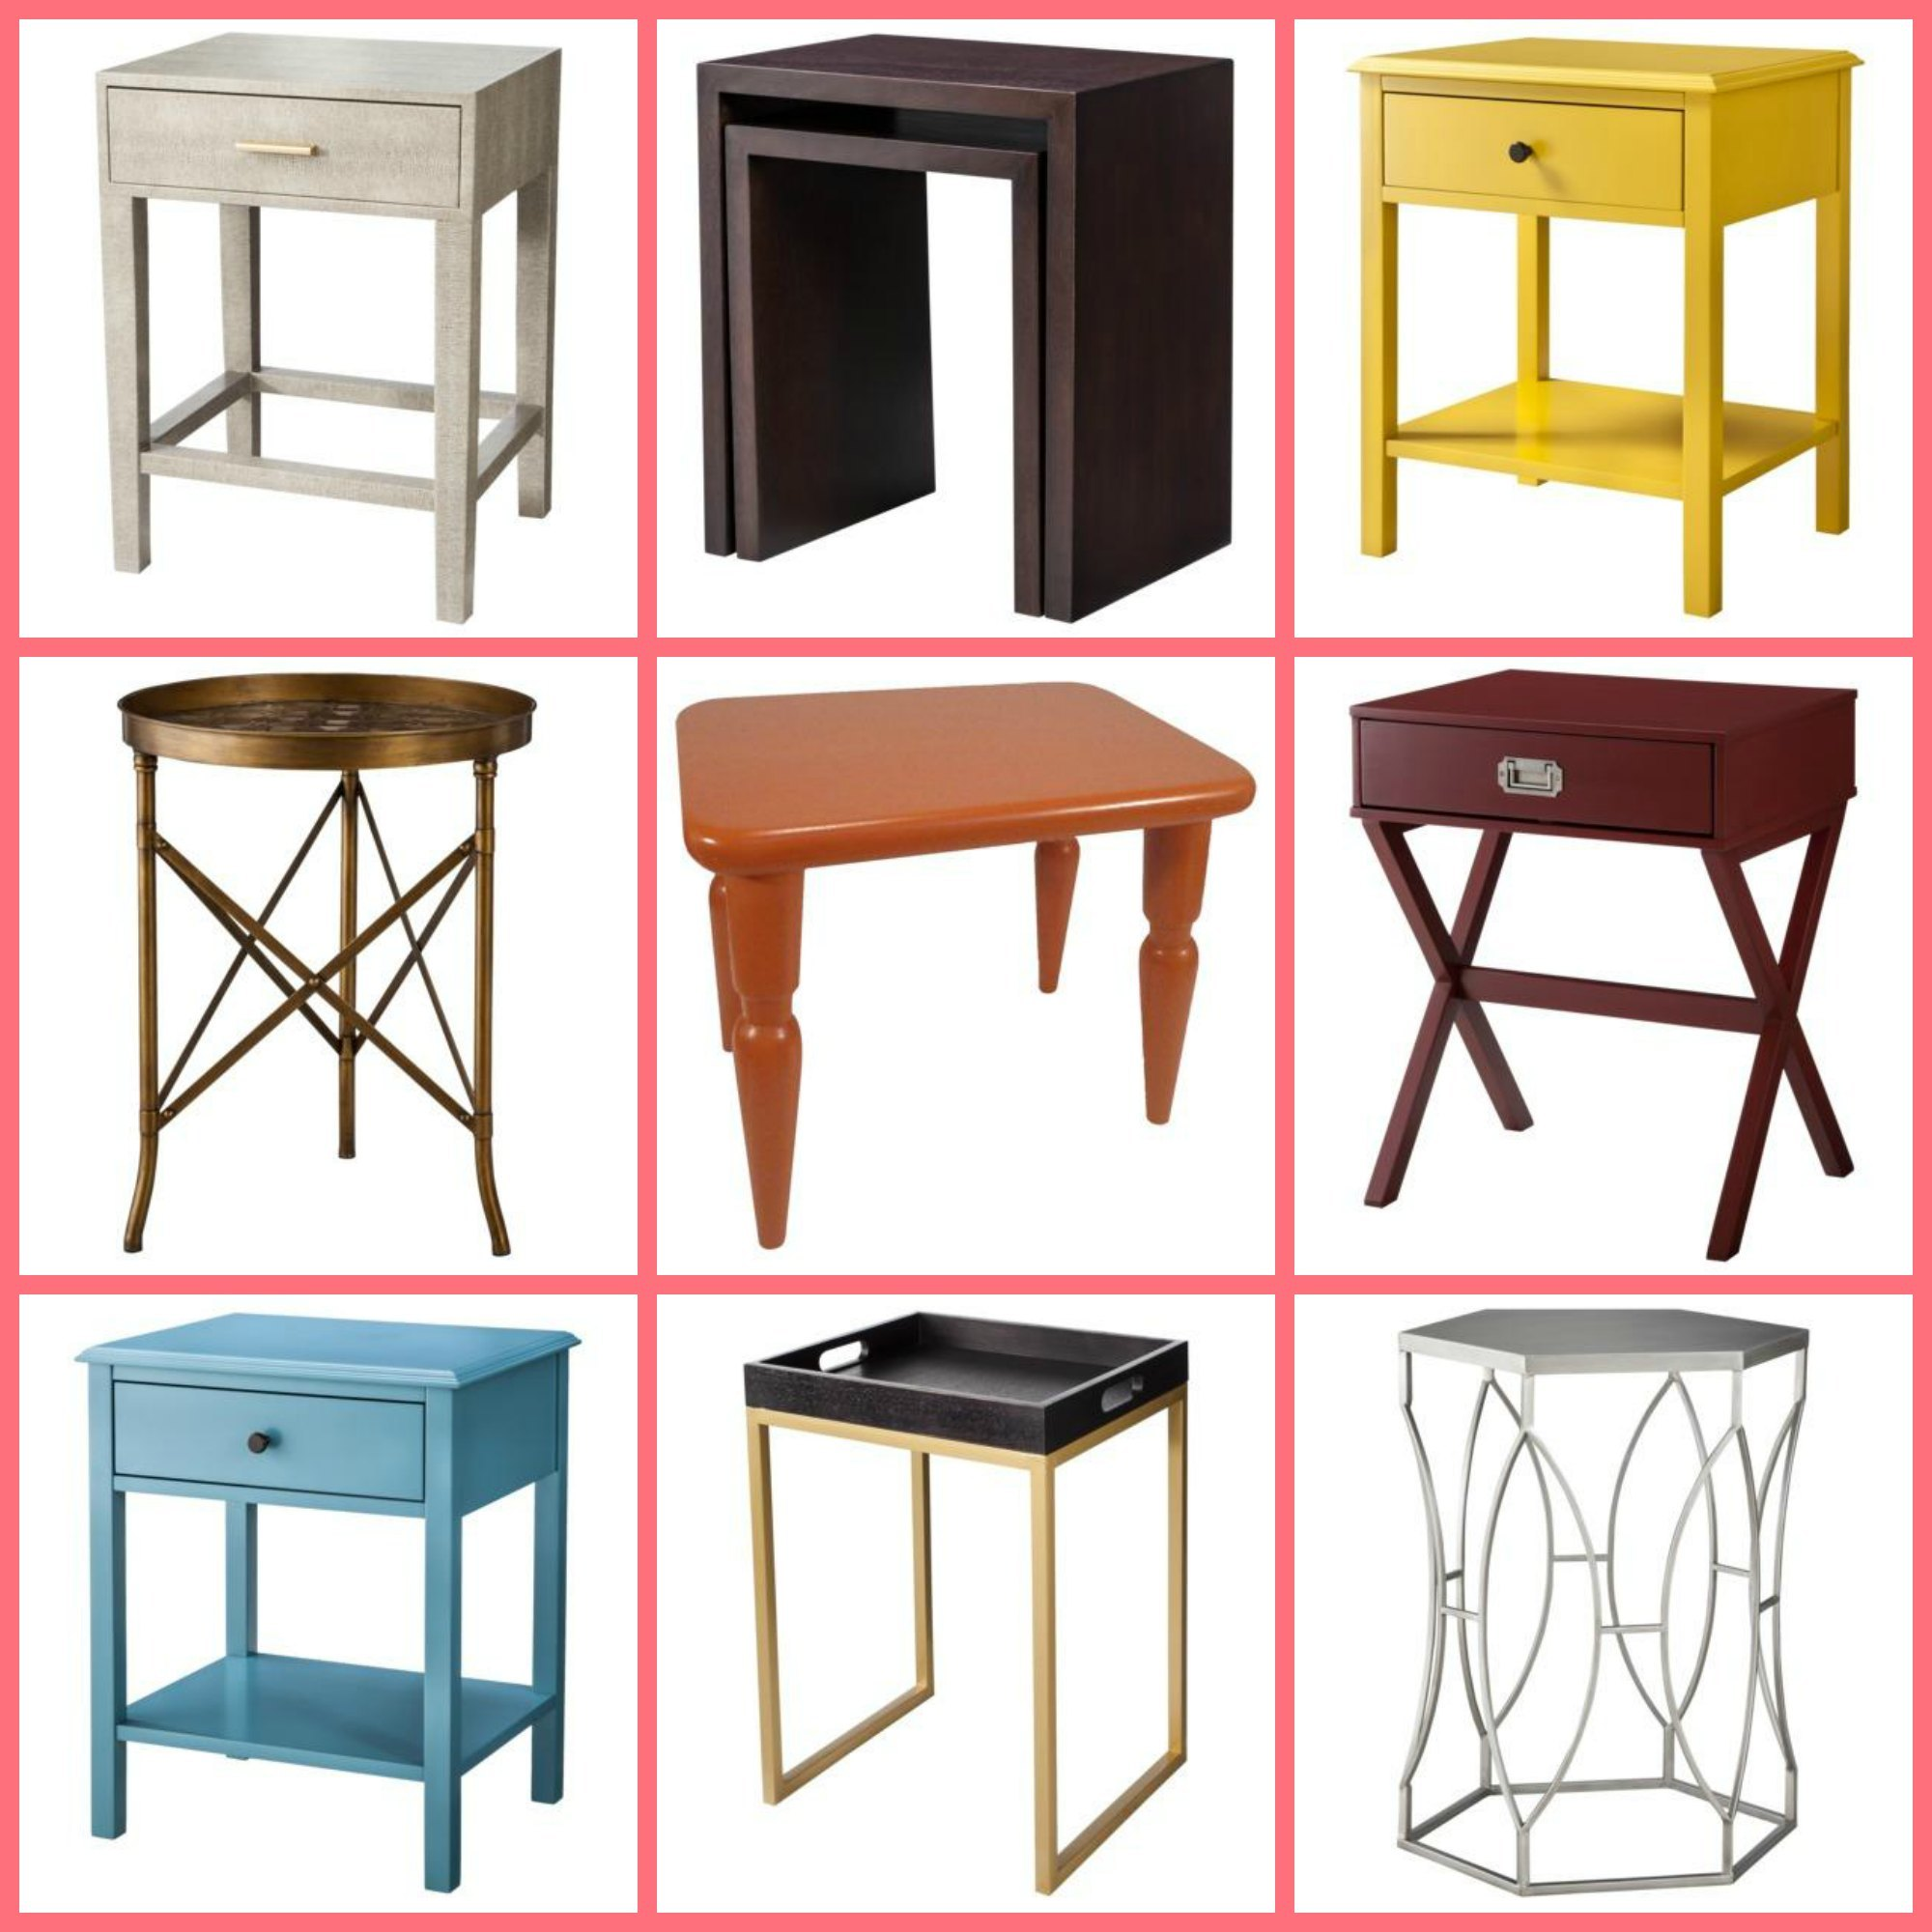 target threshold accent tables take your targertthr table clockwise from top left outdoor wicker side with umbrella hole kitchen dining dale tiffany wall art white glass lamp